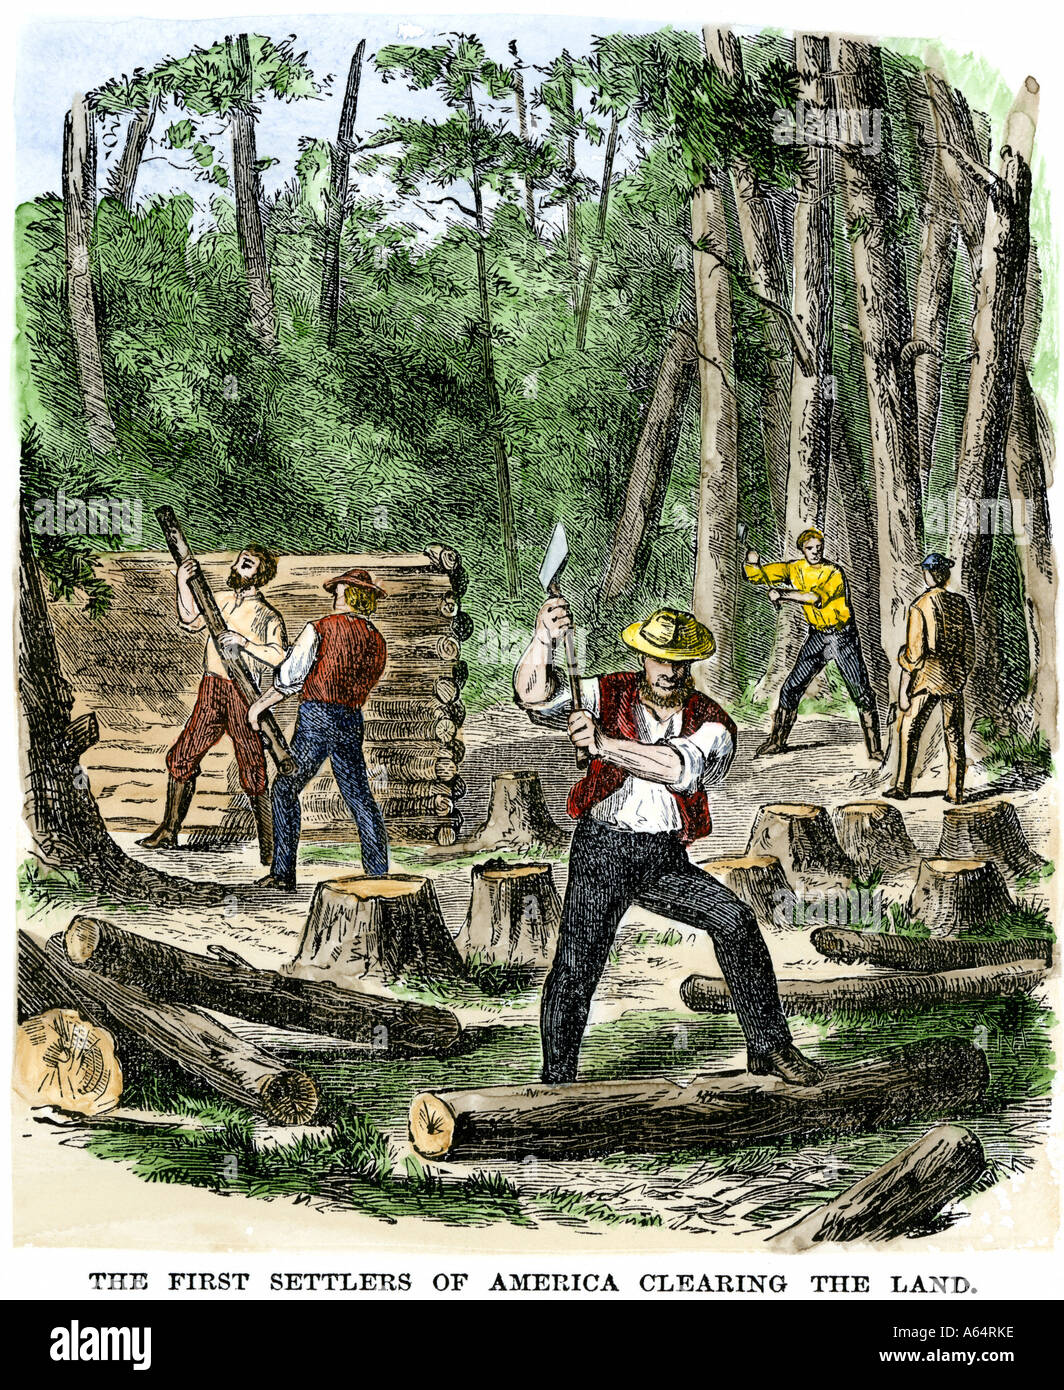 Early Settlers Of North America Clearing Land Stock Photo